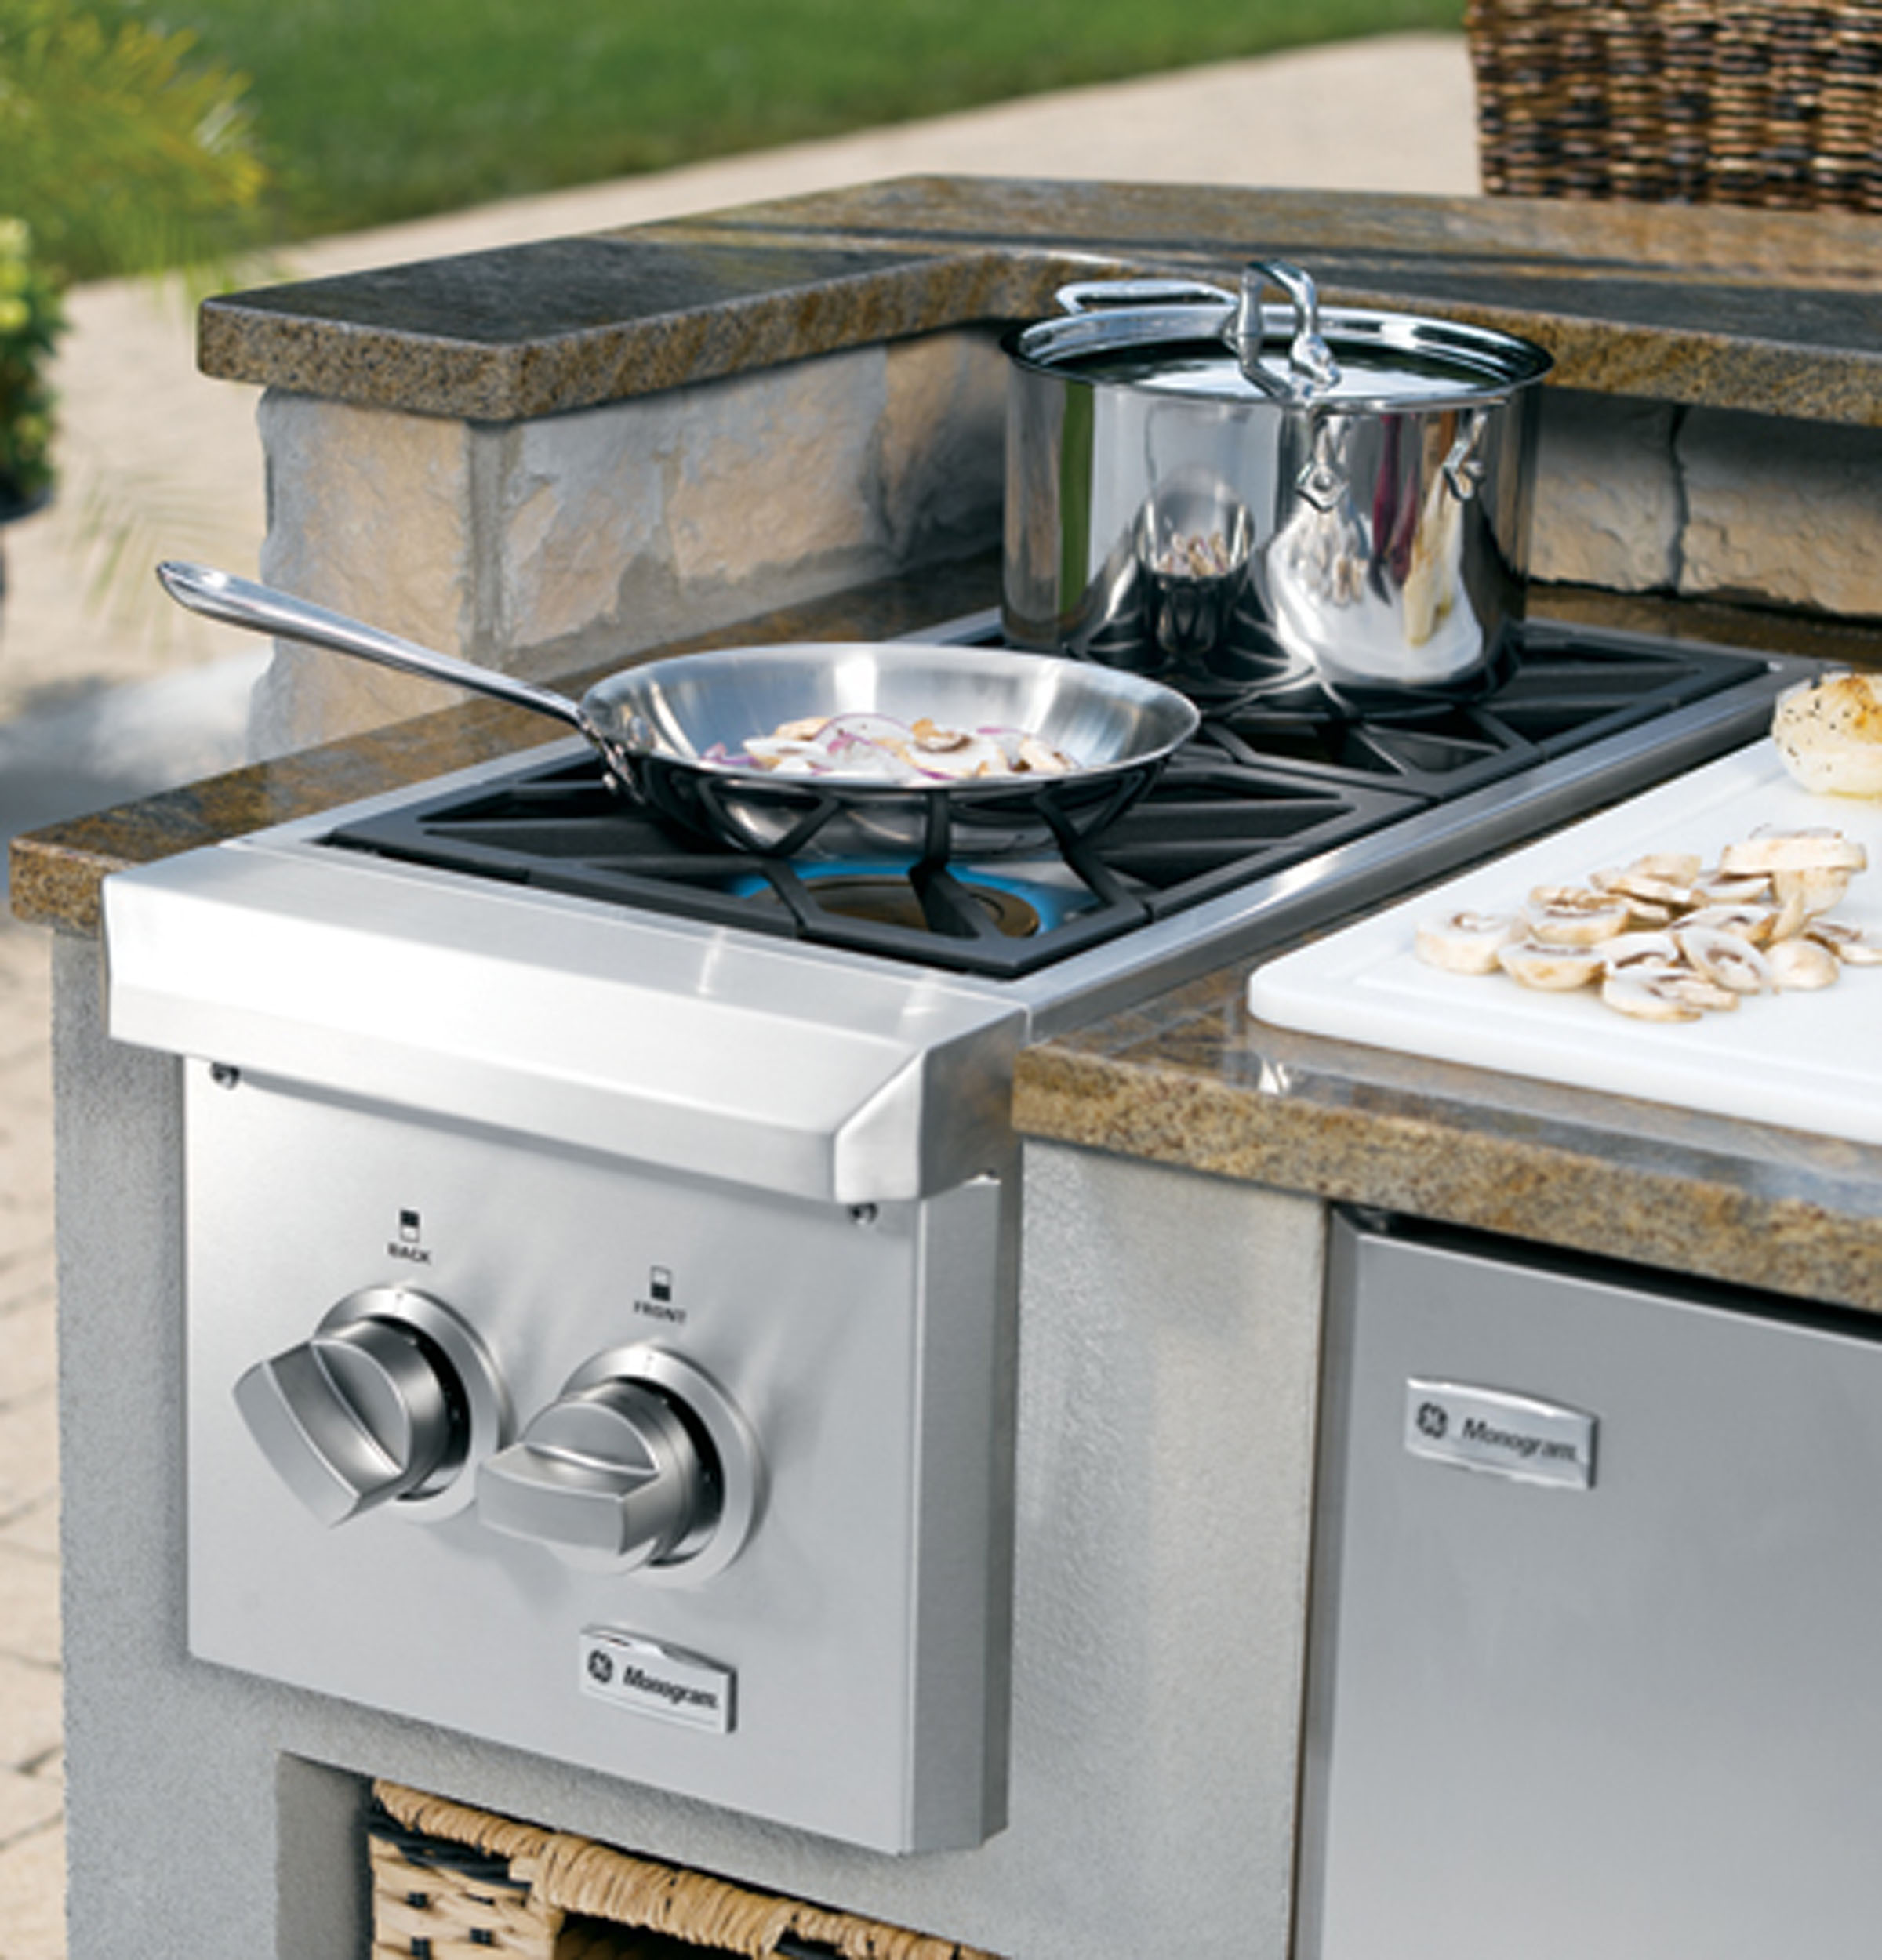 Wall oven under cooktop - Product Image Product Image